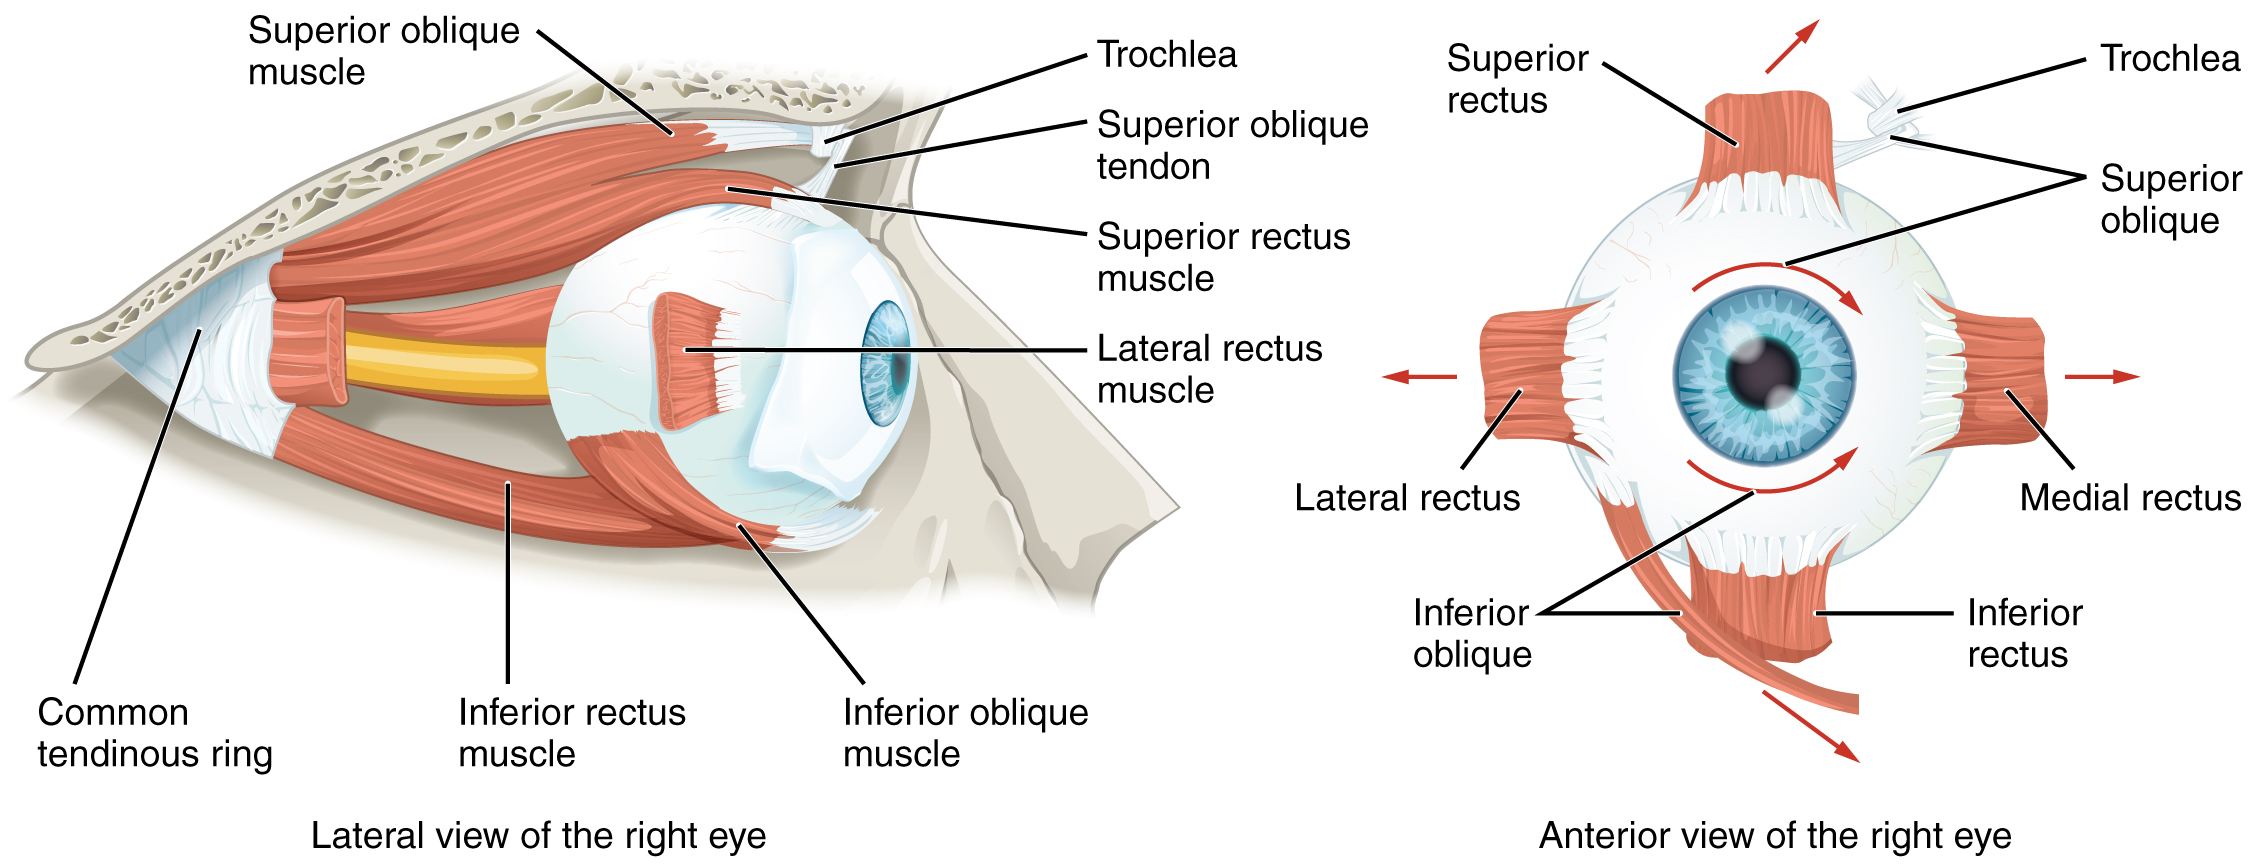 This image shows the muscles surrounding the eye. The left panel shows the lateral view, and the right panel shows the anterior view of the right eye.